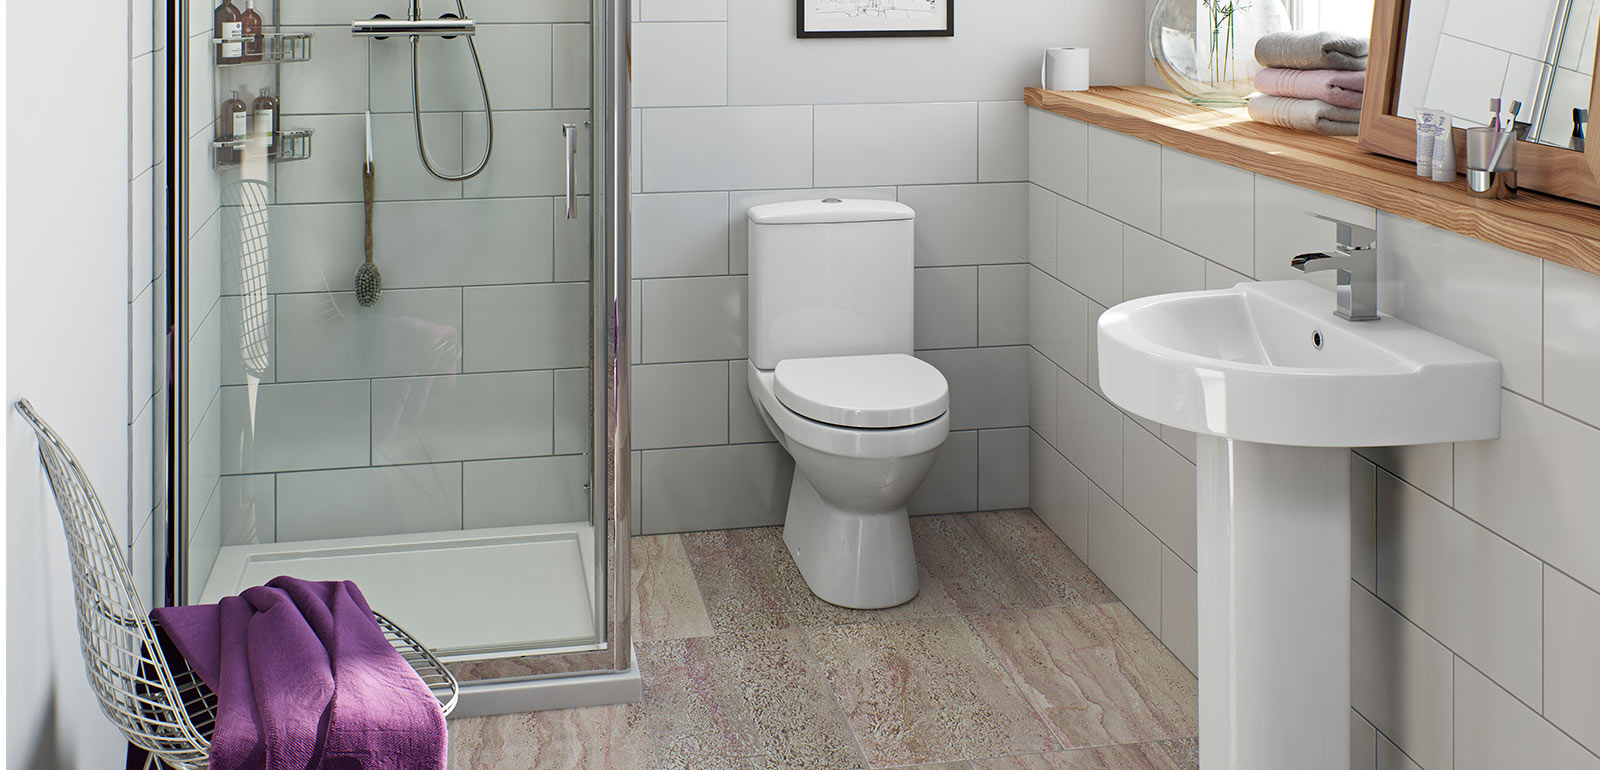 Sorrento Bathroom Suite Range